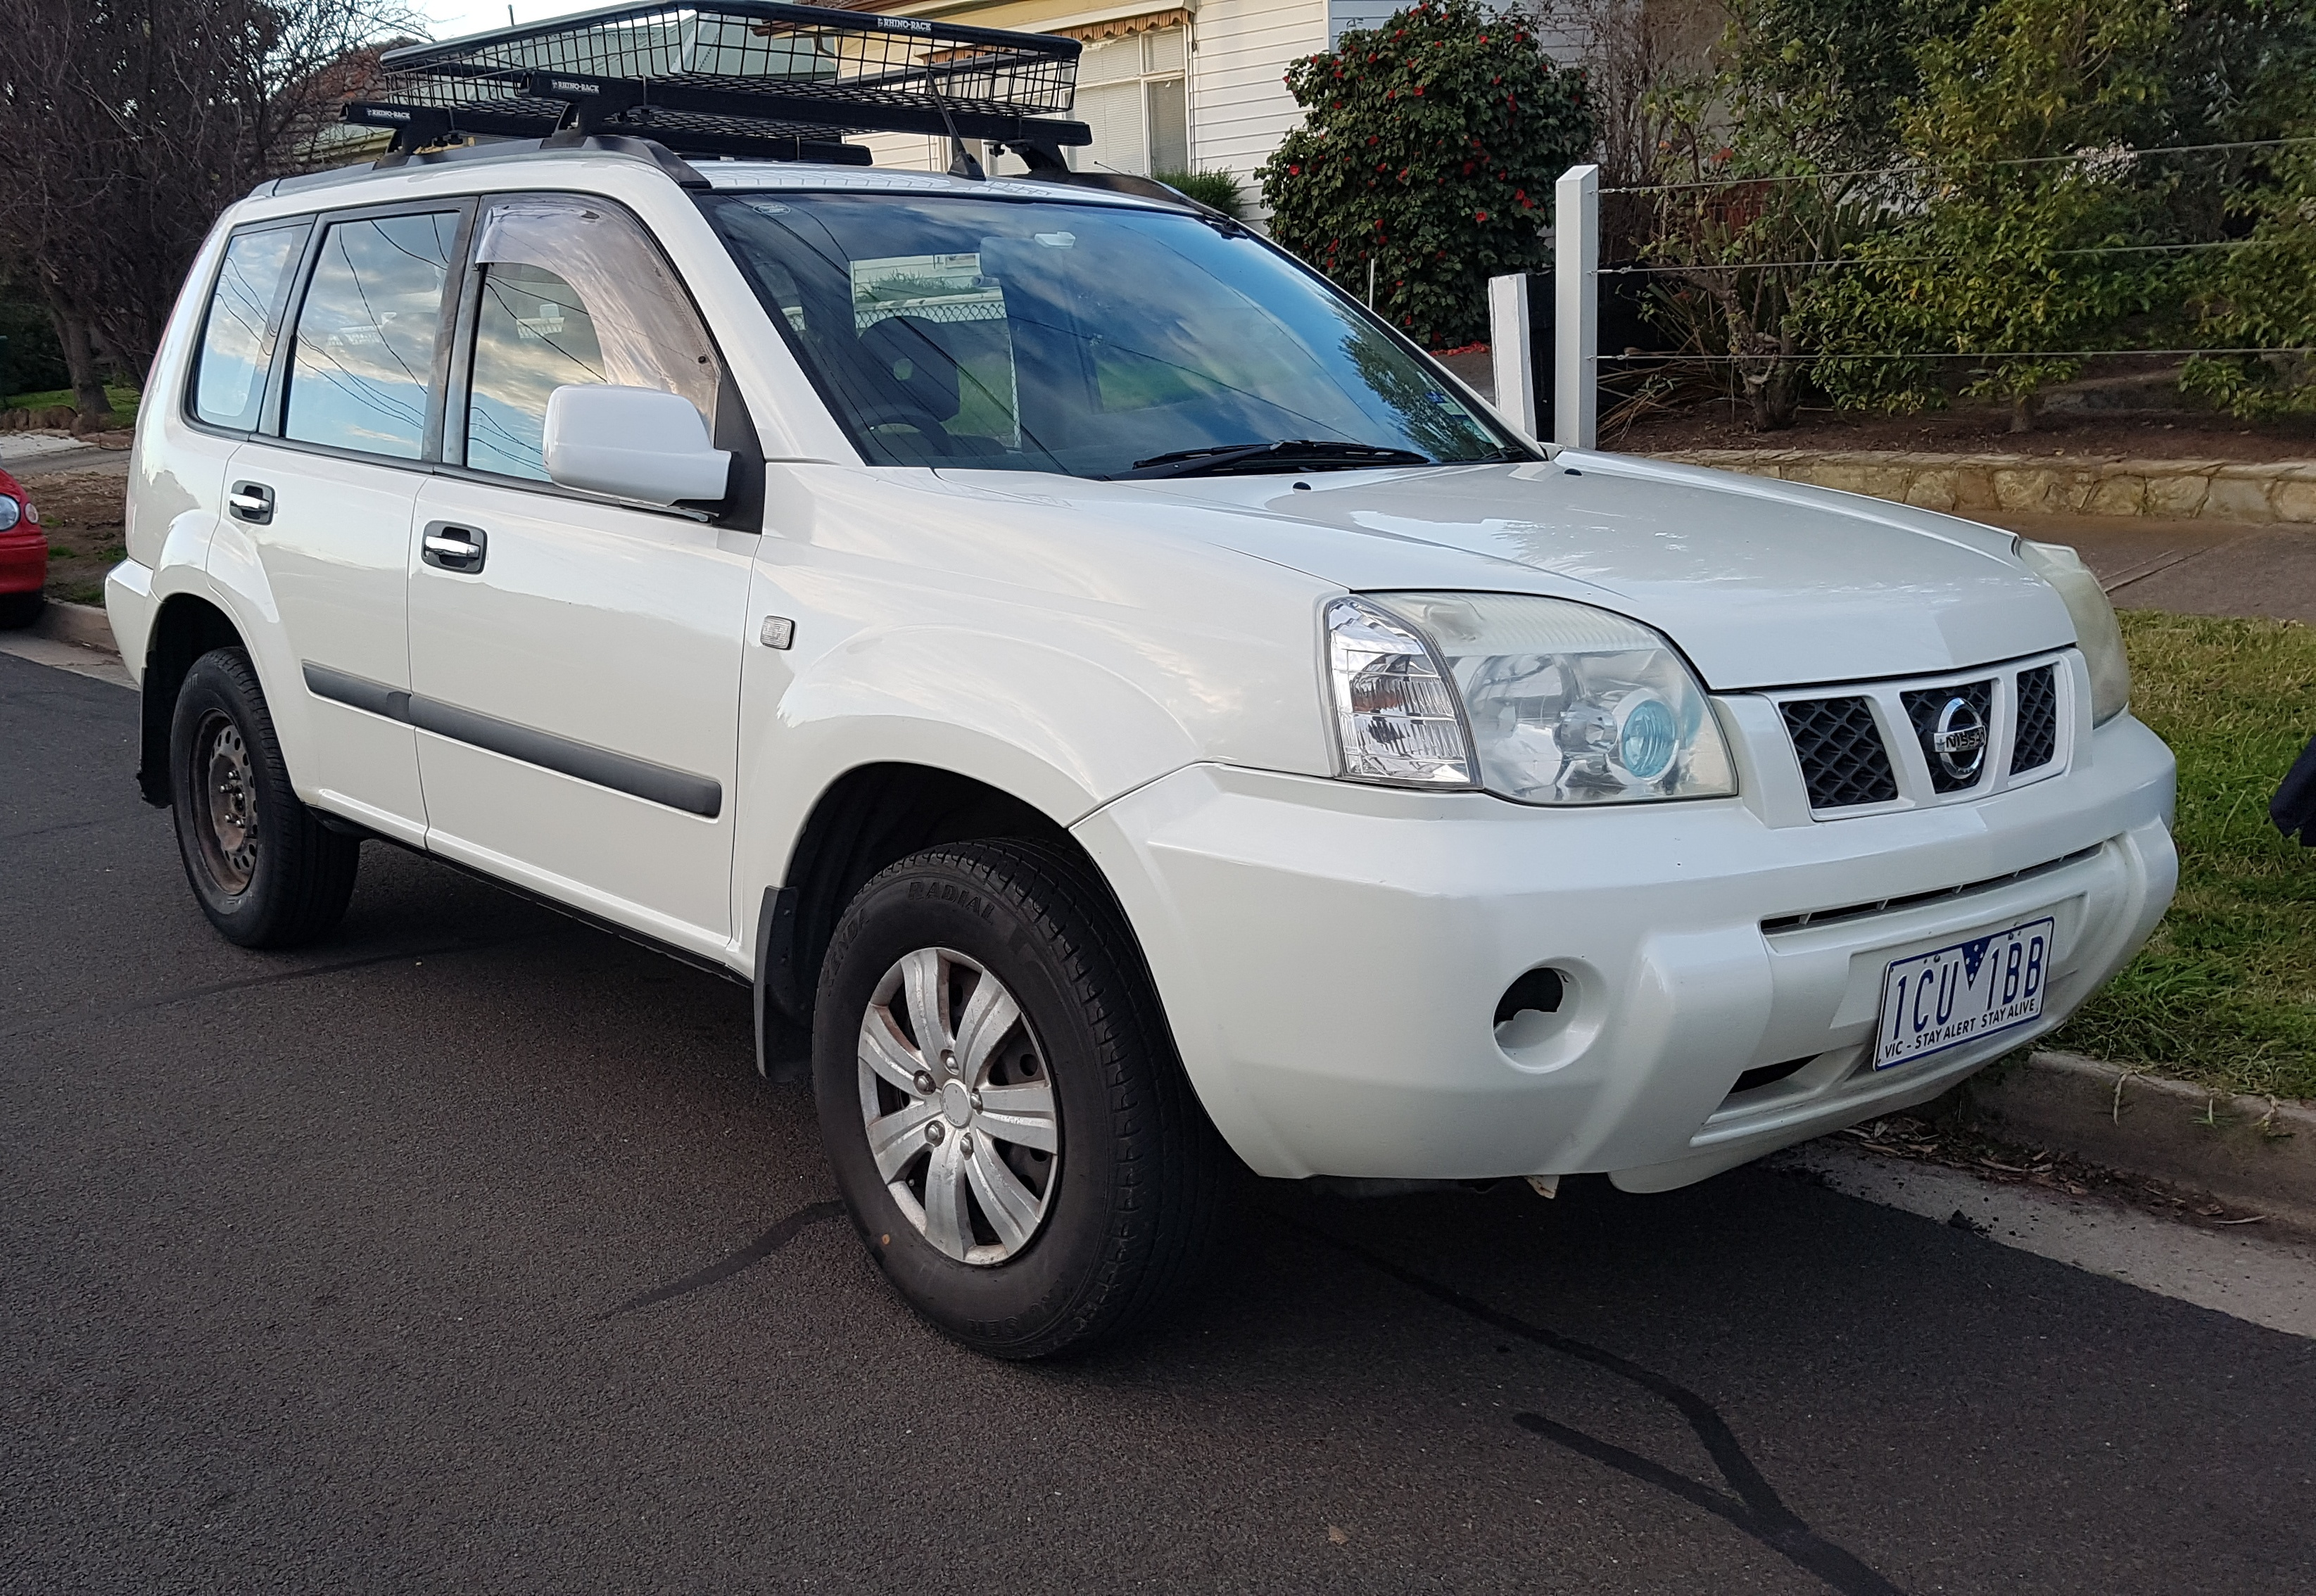 Picture of Rory's 2005 Nissan X-Trail